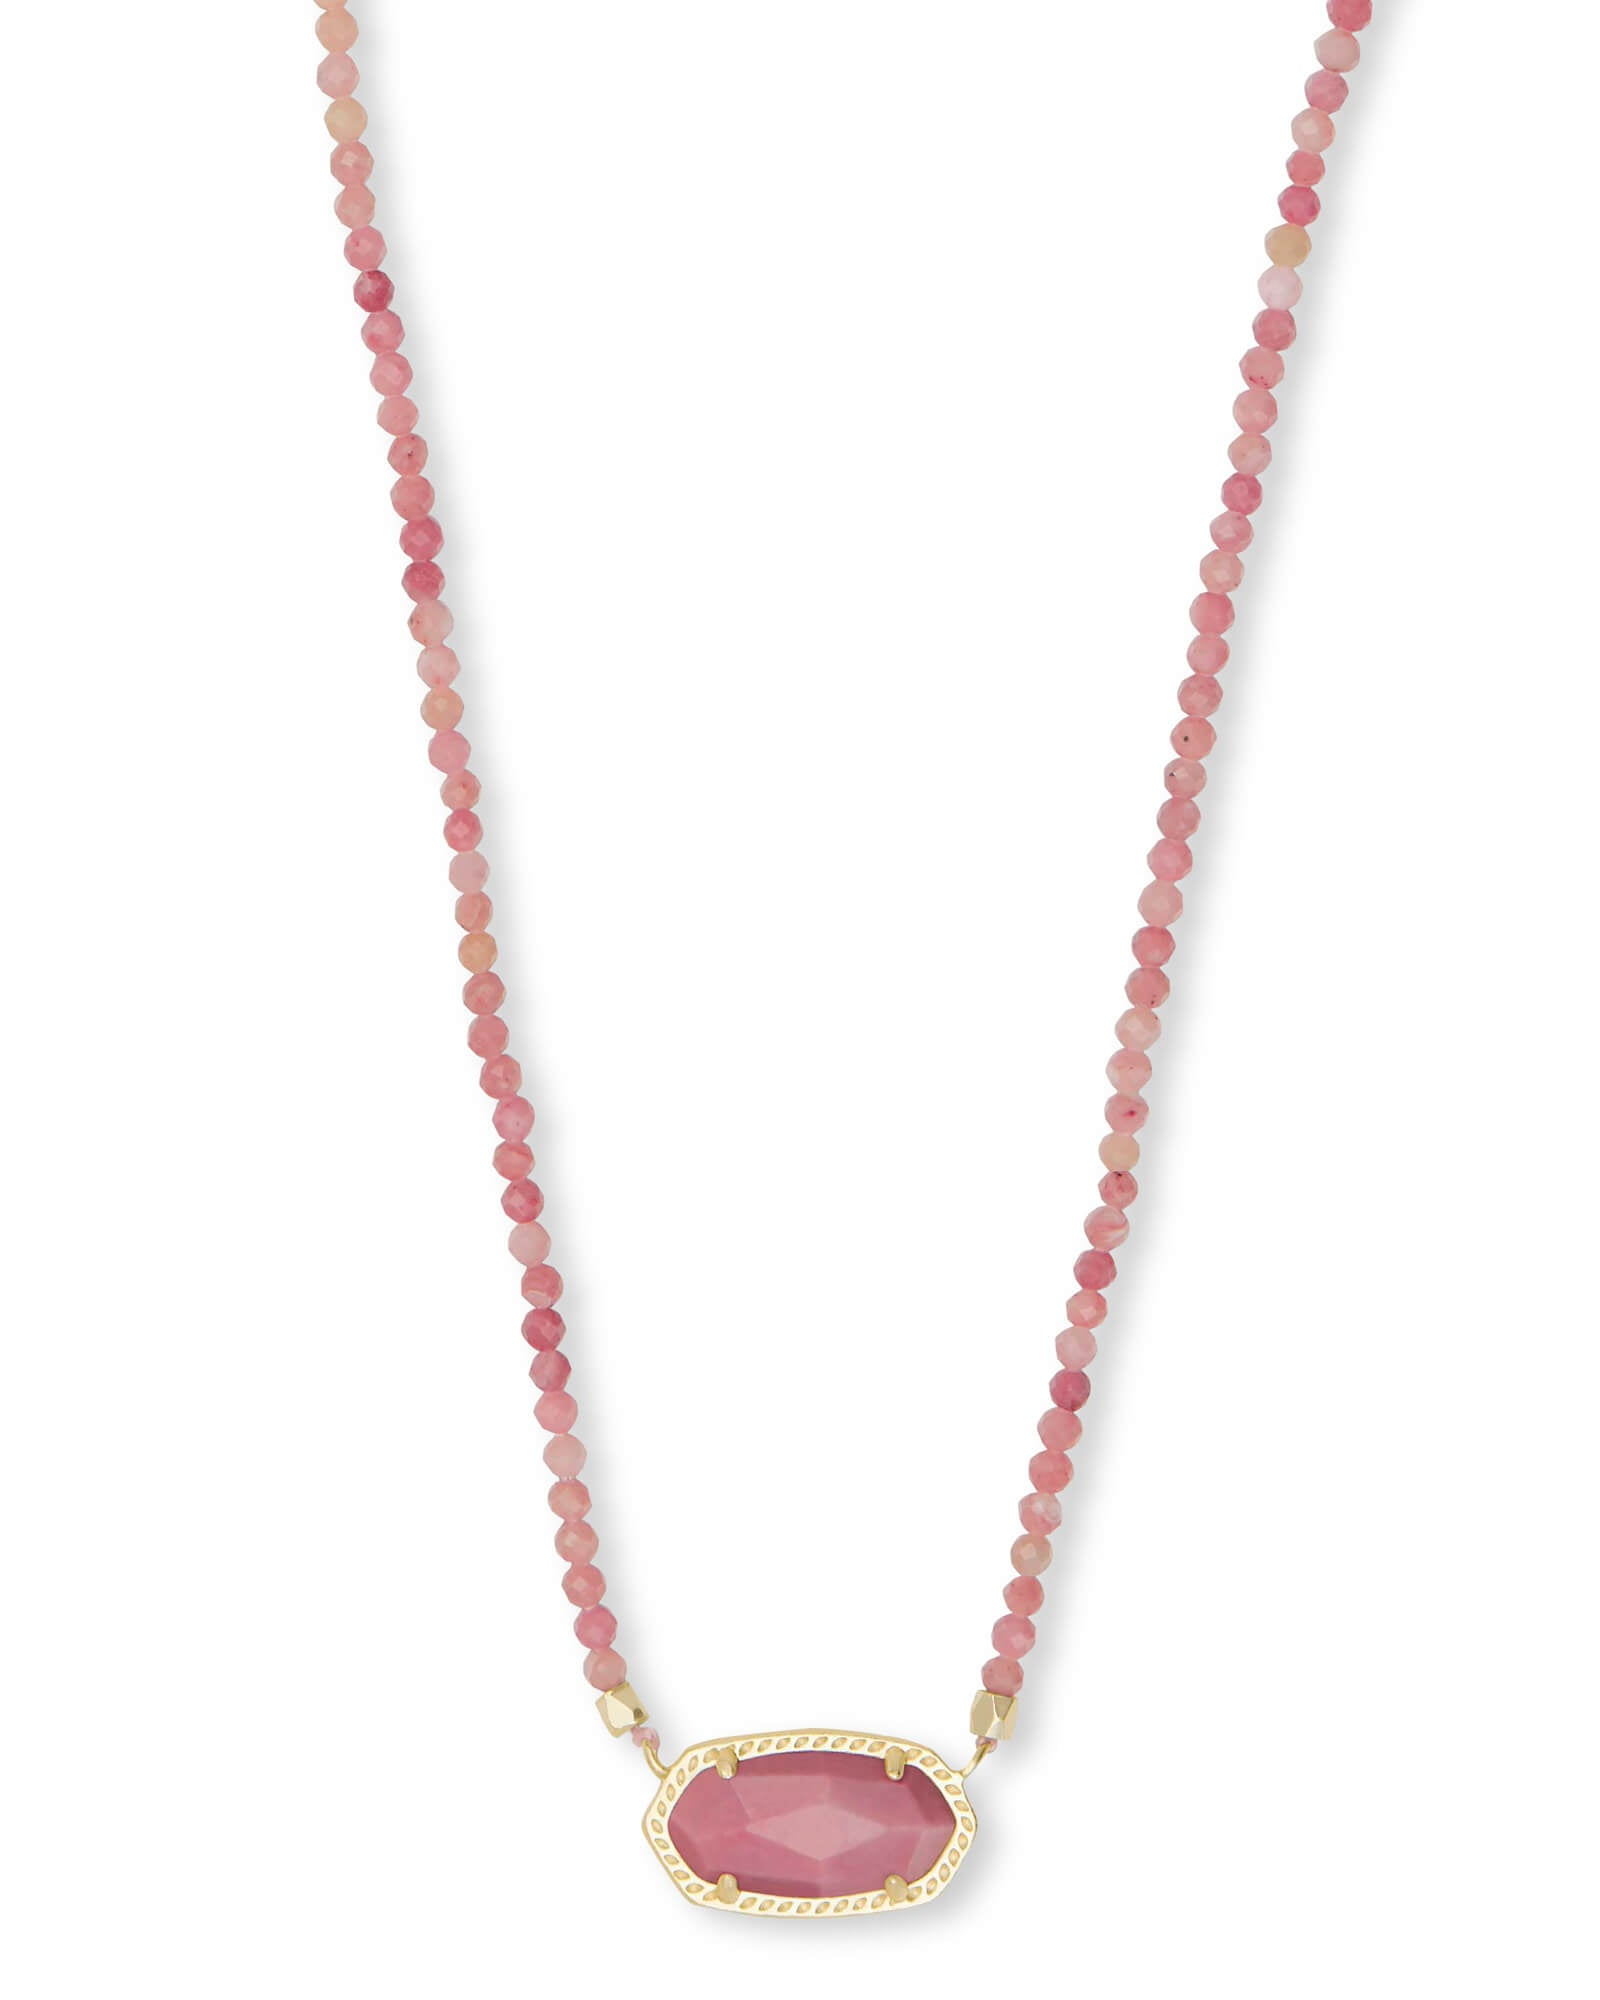 Elisa Gold Beaded Pendant Necklace in Pink Rhodonite